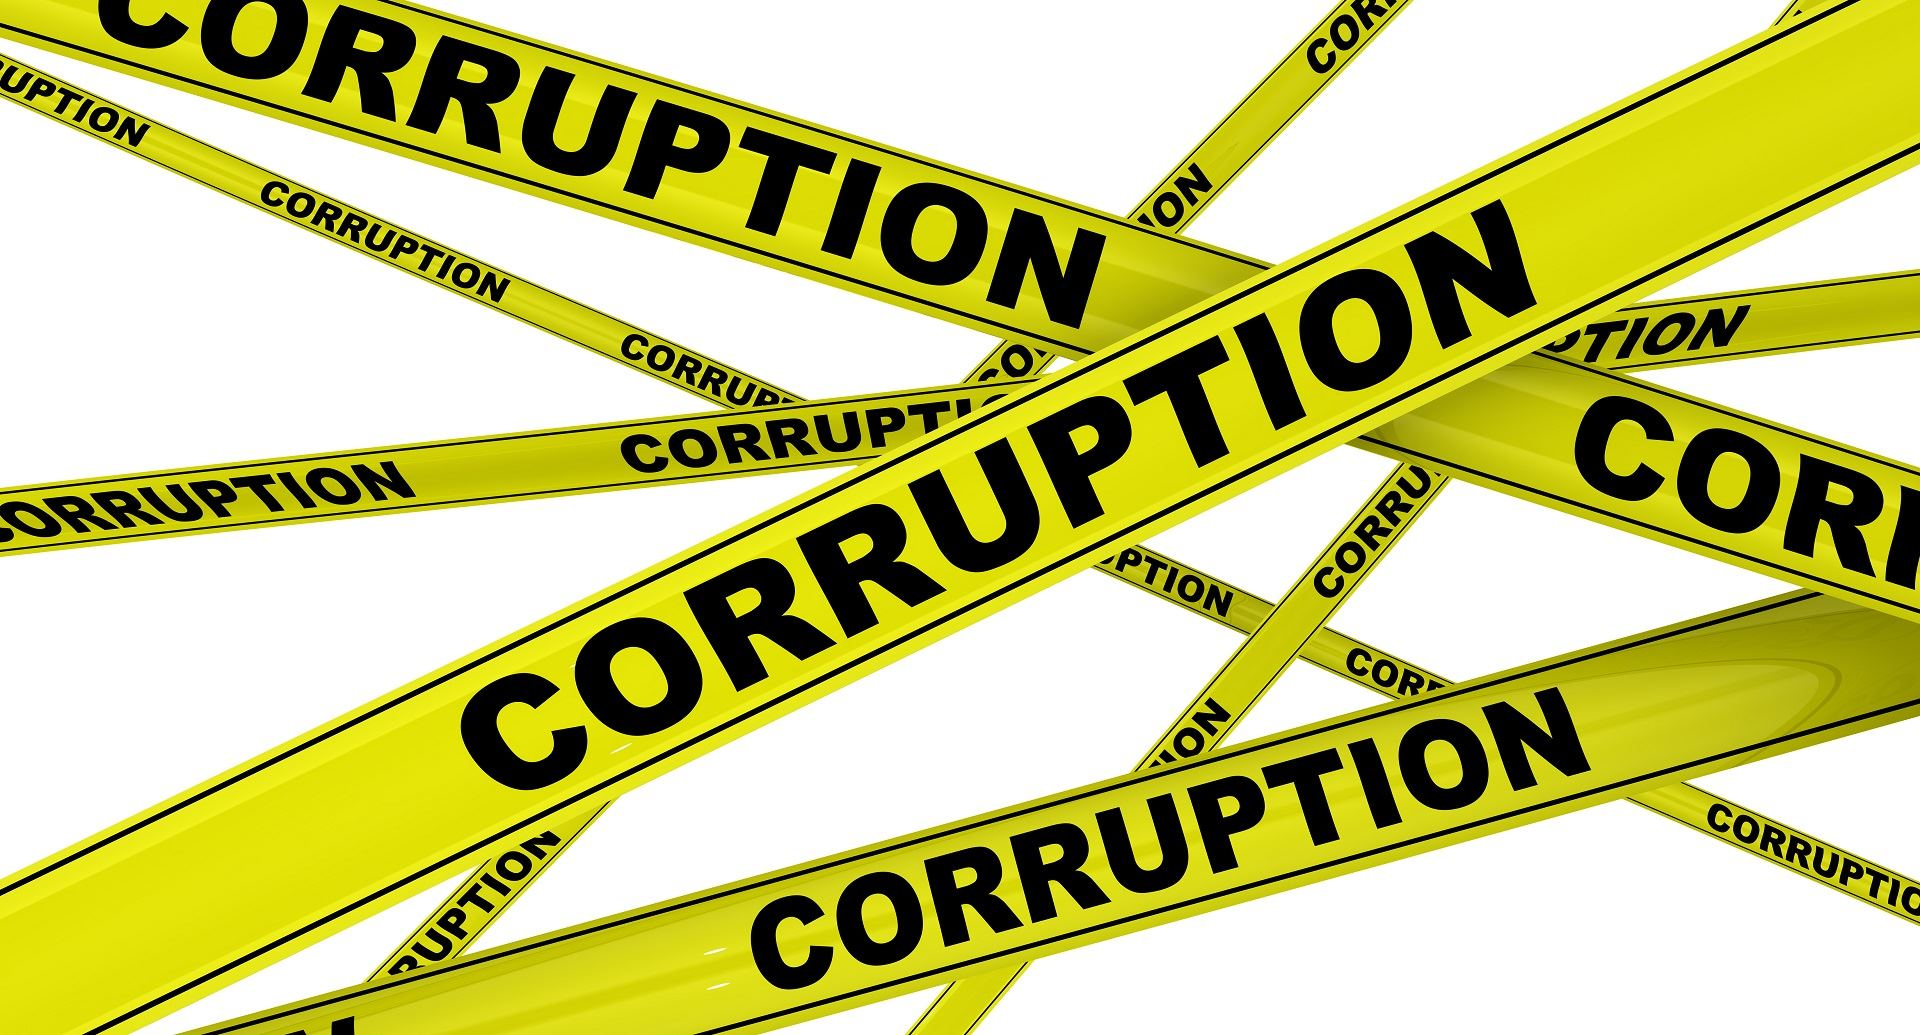 the slippery slope to corruption and As a preliminary charncteri:arion, a slippery slope argument i:  on rhe ground  that tr wtji increas: rhe nsk of a corruption o( good dcci ion making that 1s.